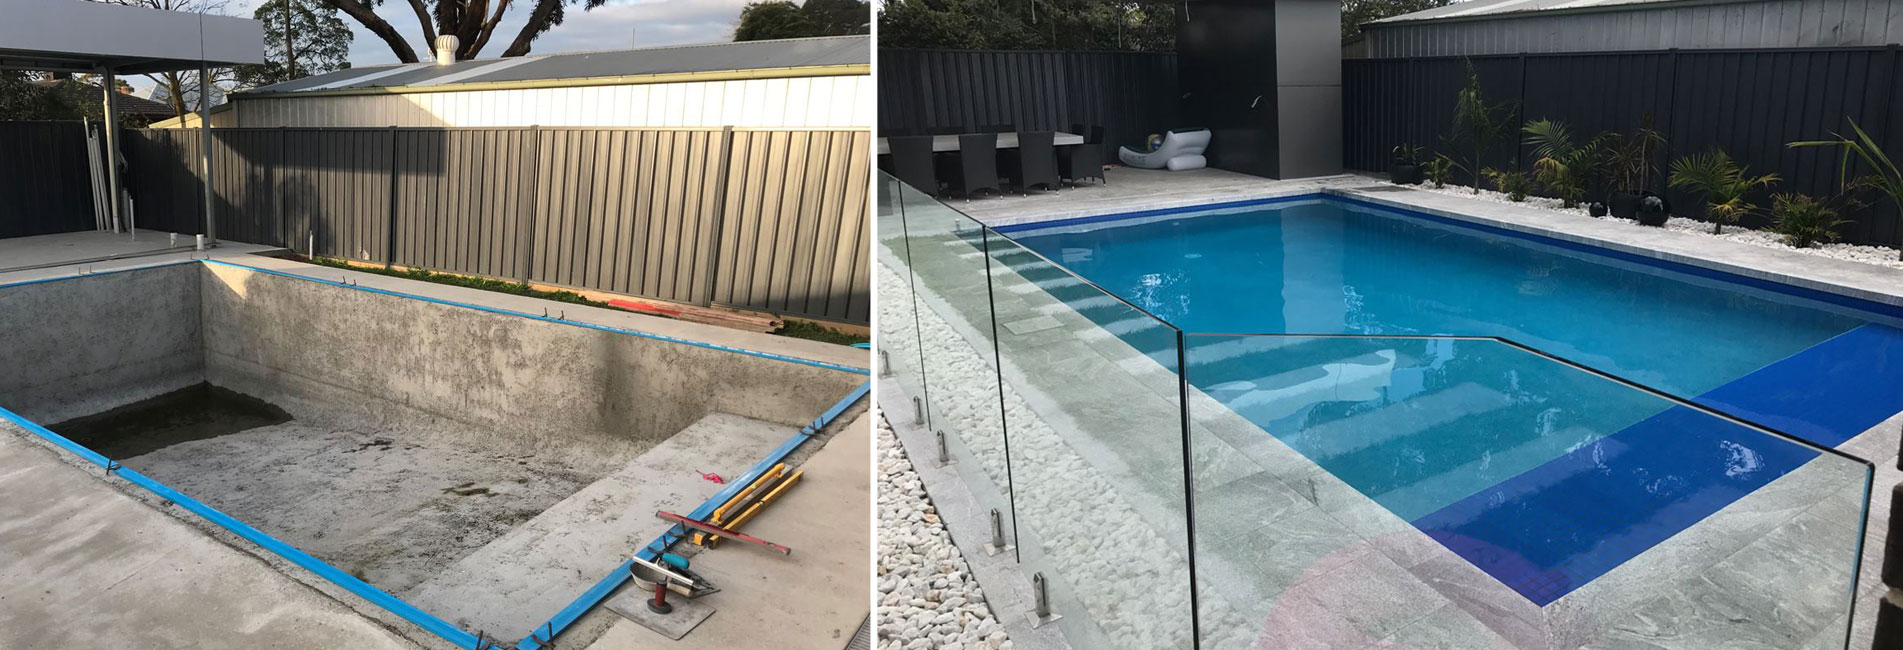 Pools That Work - RENOVATIONS | INTERIORS | TILING | RESURFACING